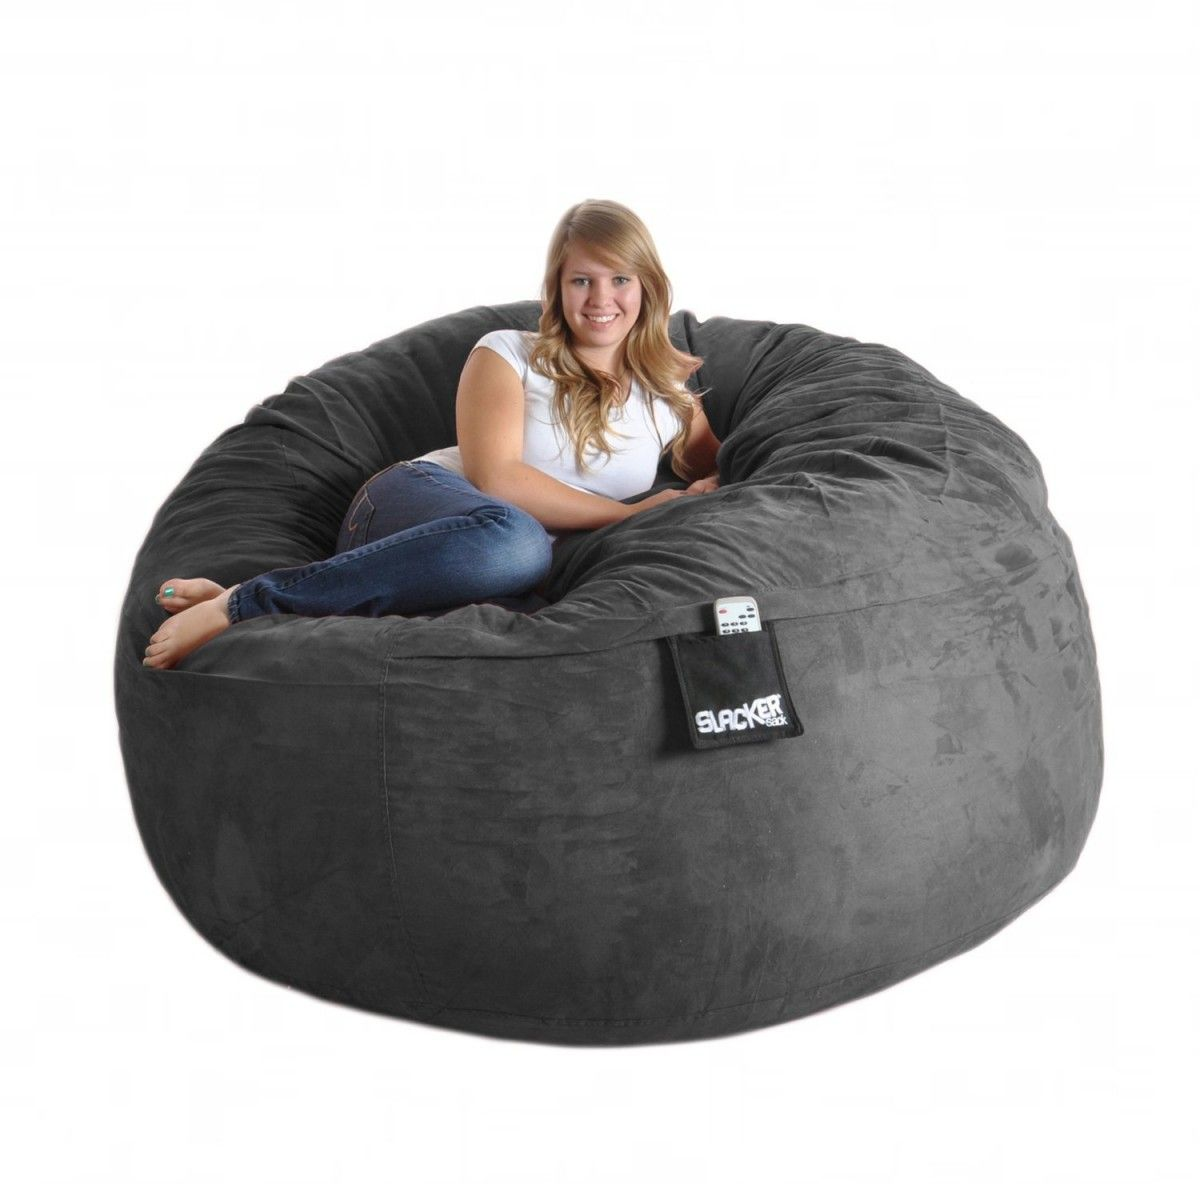 Elegant Making Oversized Bean Bag Chairs Foam Padding   Http://poufs.njcomicexpo.